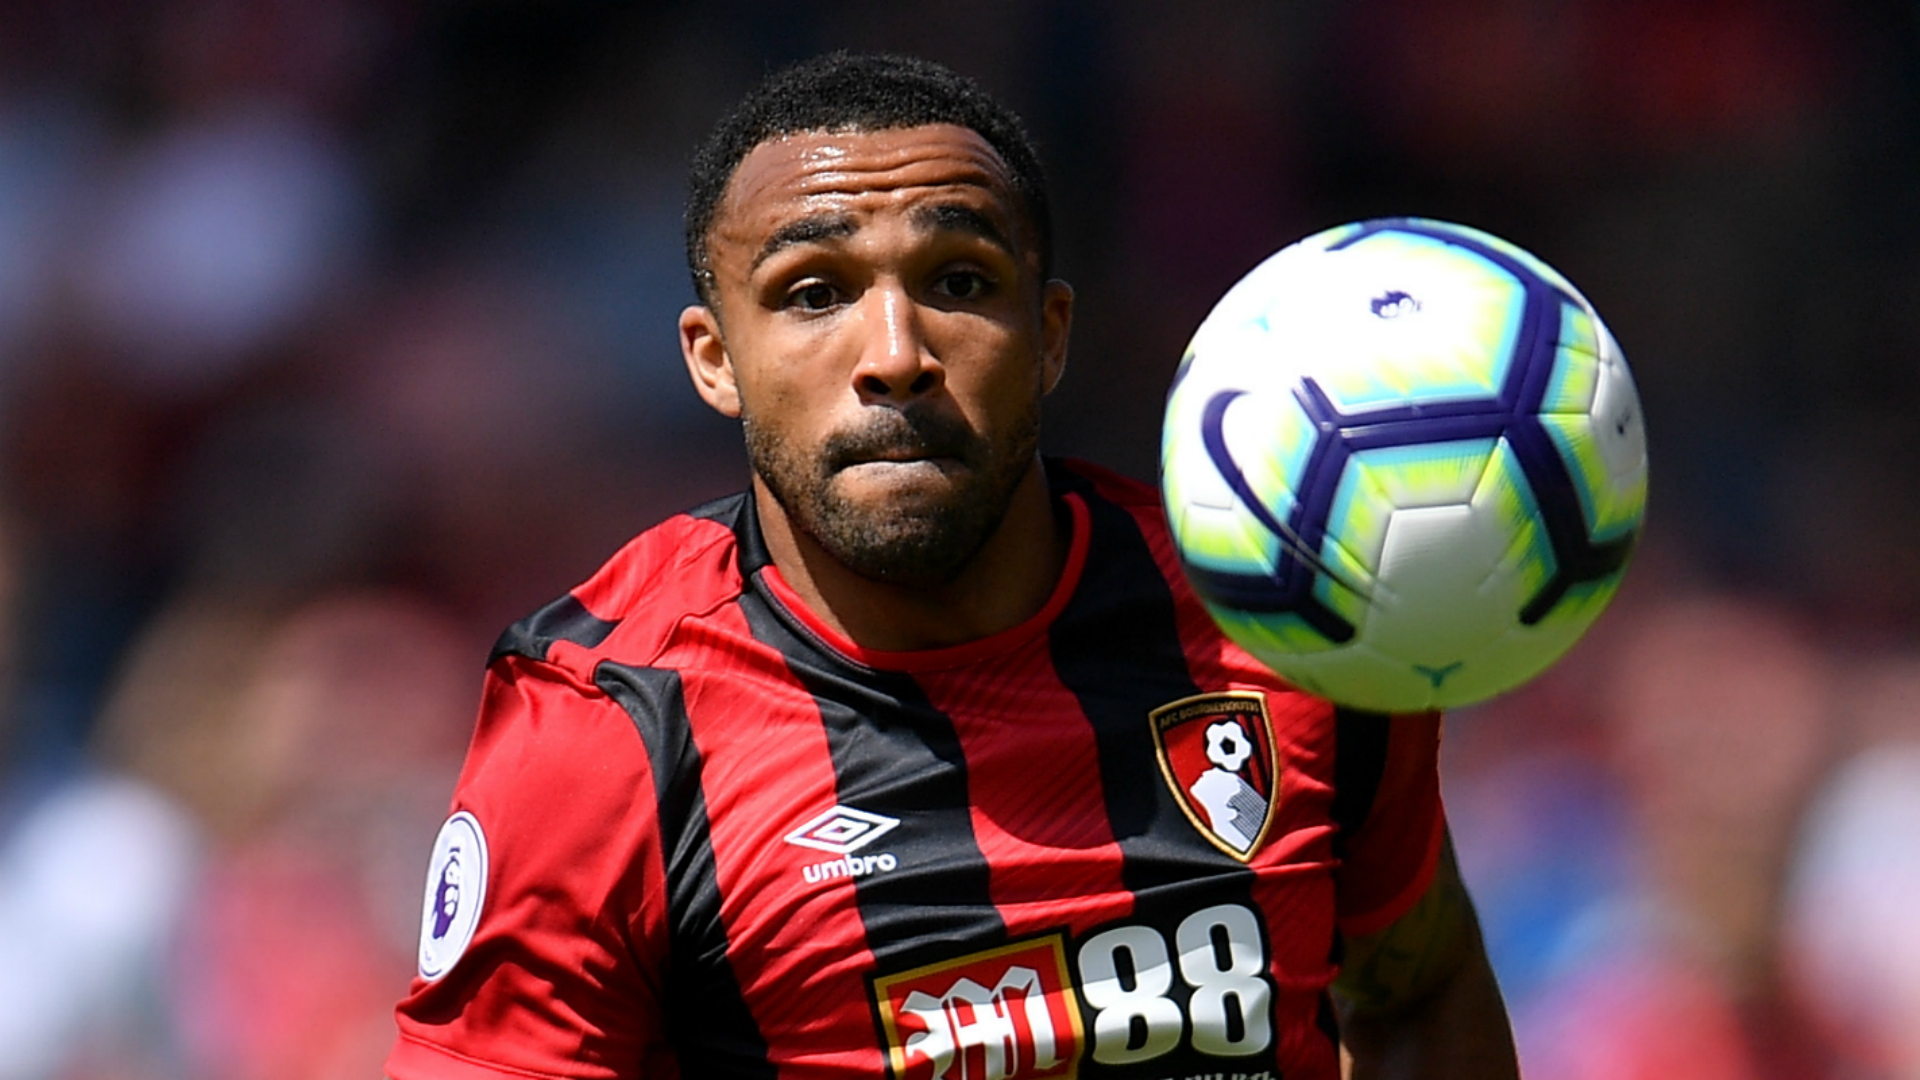 The England striker was linked with a January move to Chelsea, but Callum Wilson is staying at Bournemouth.